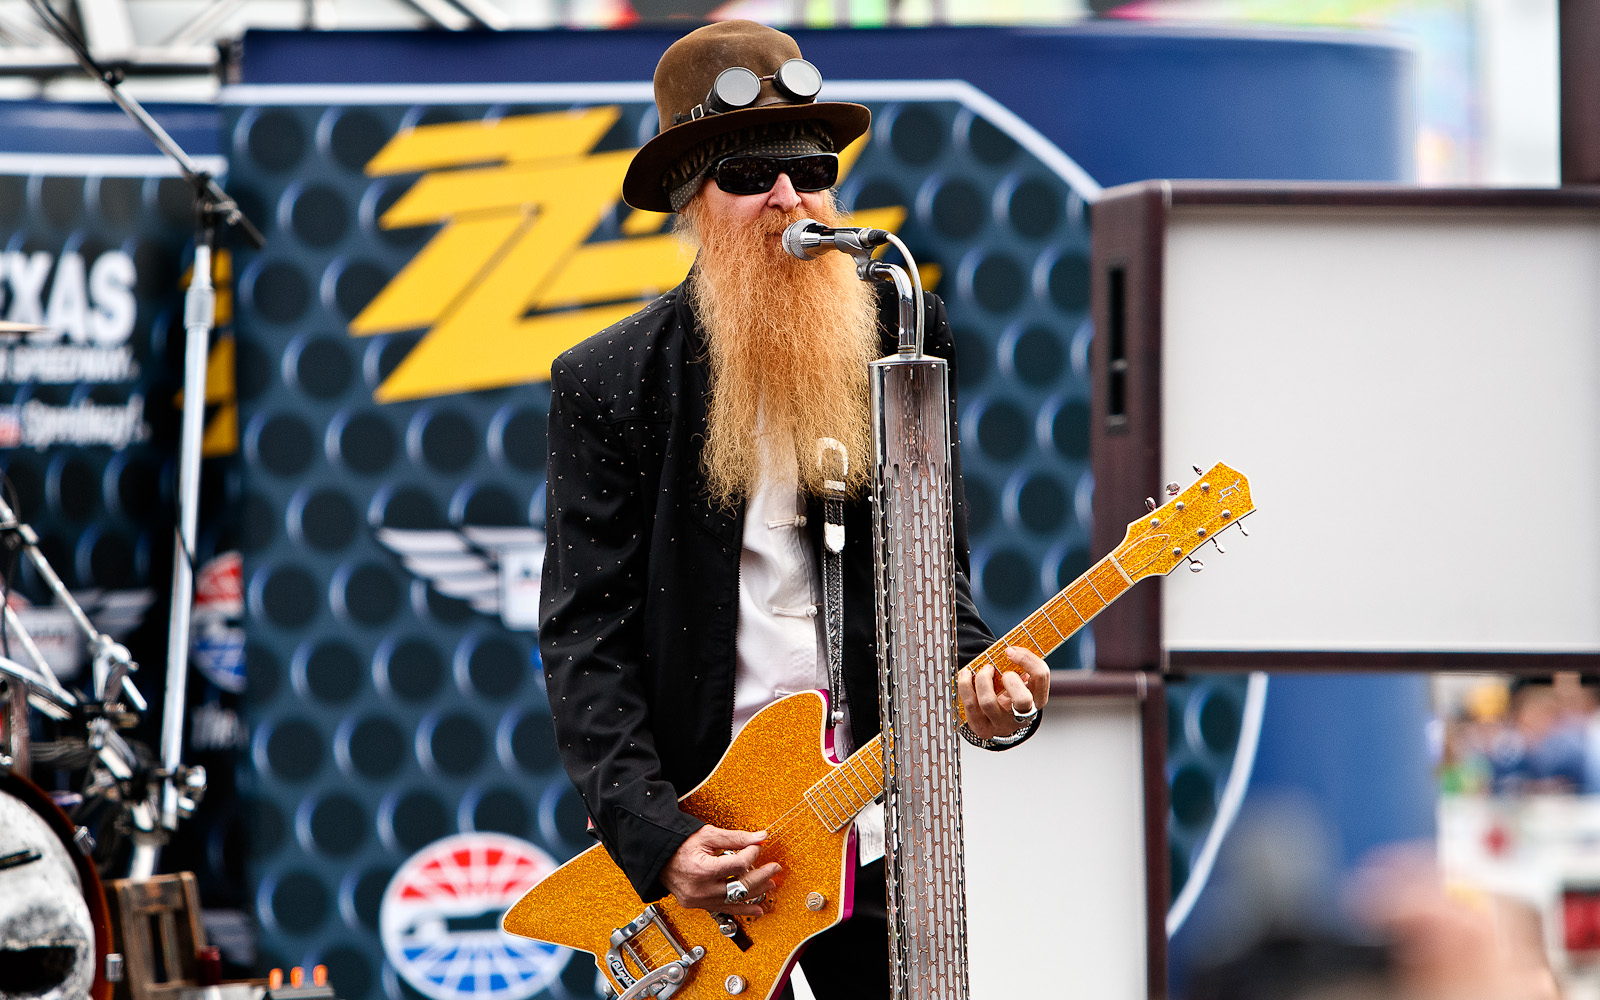 ZZ Top at Texas Motor Speedway